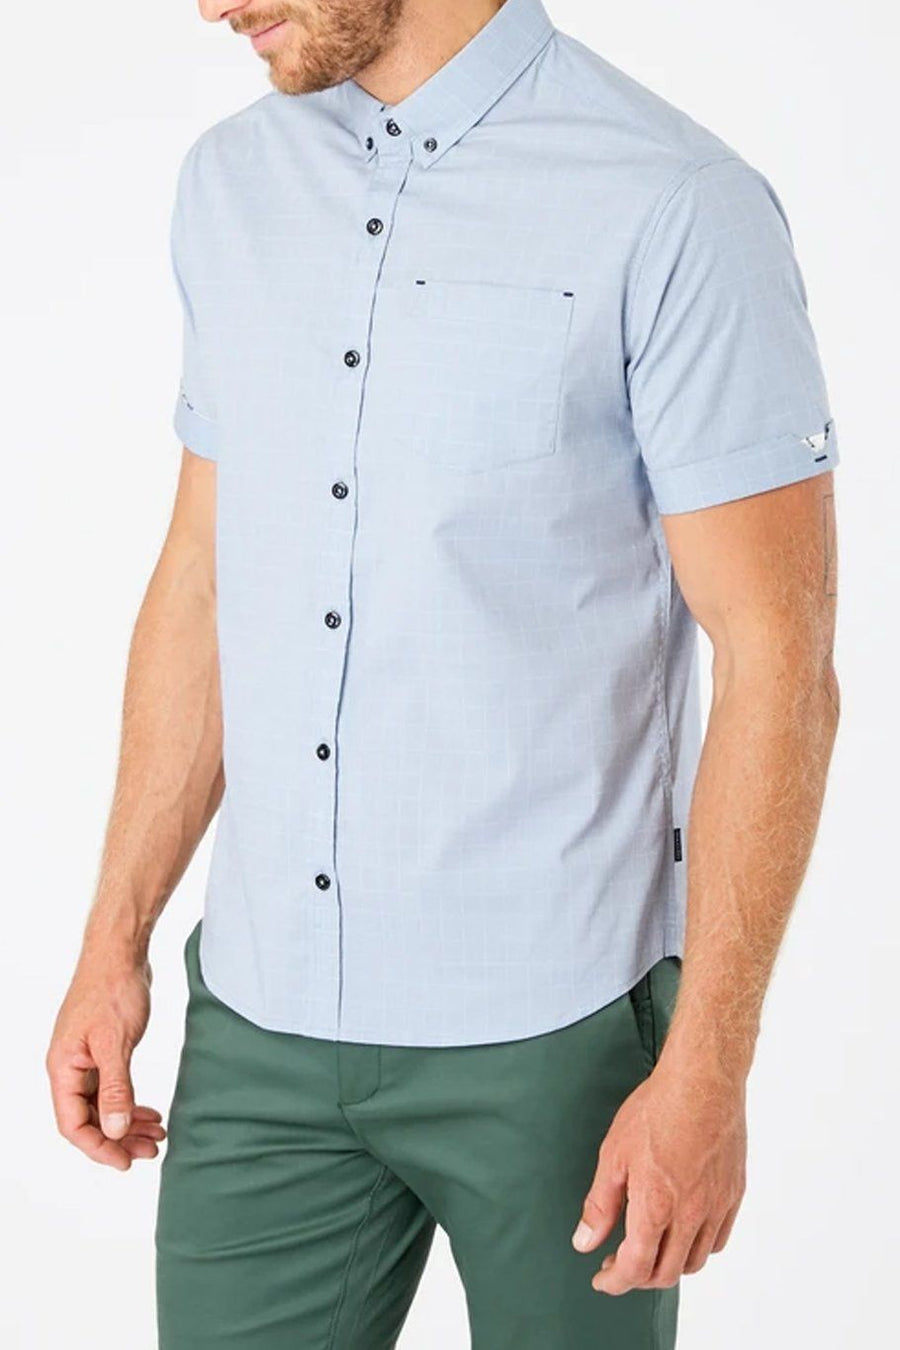 Saga Short Sleeve Shirt - Slate Blue - Shore